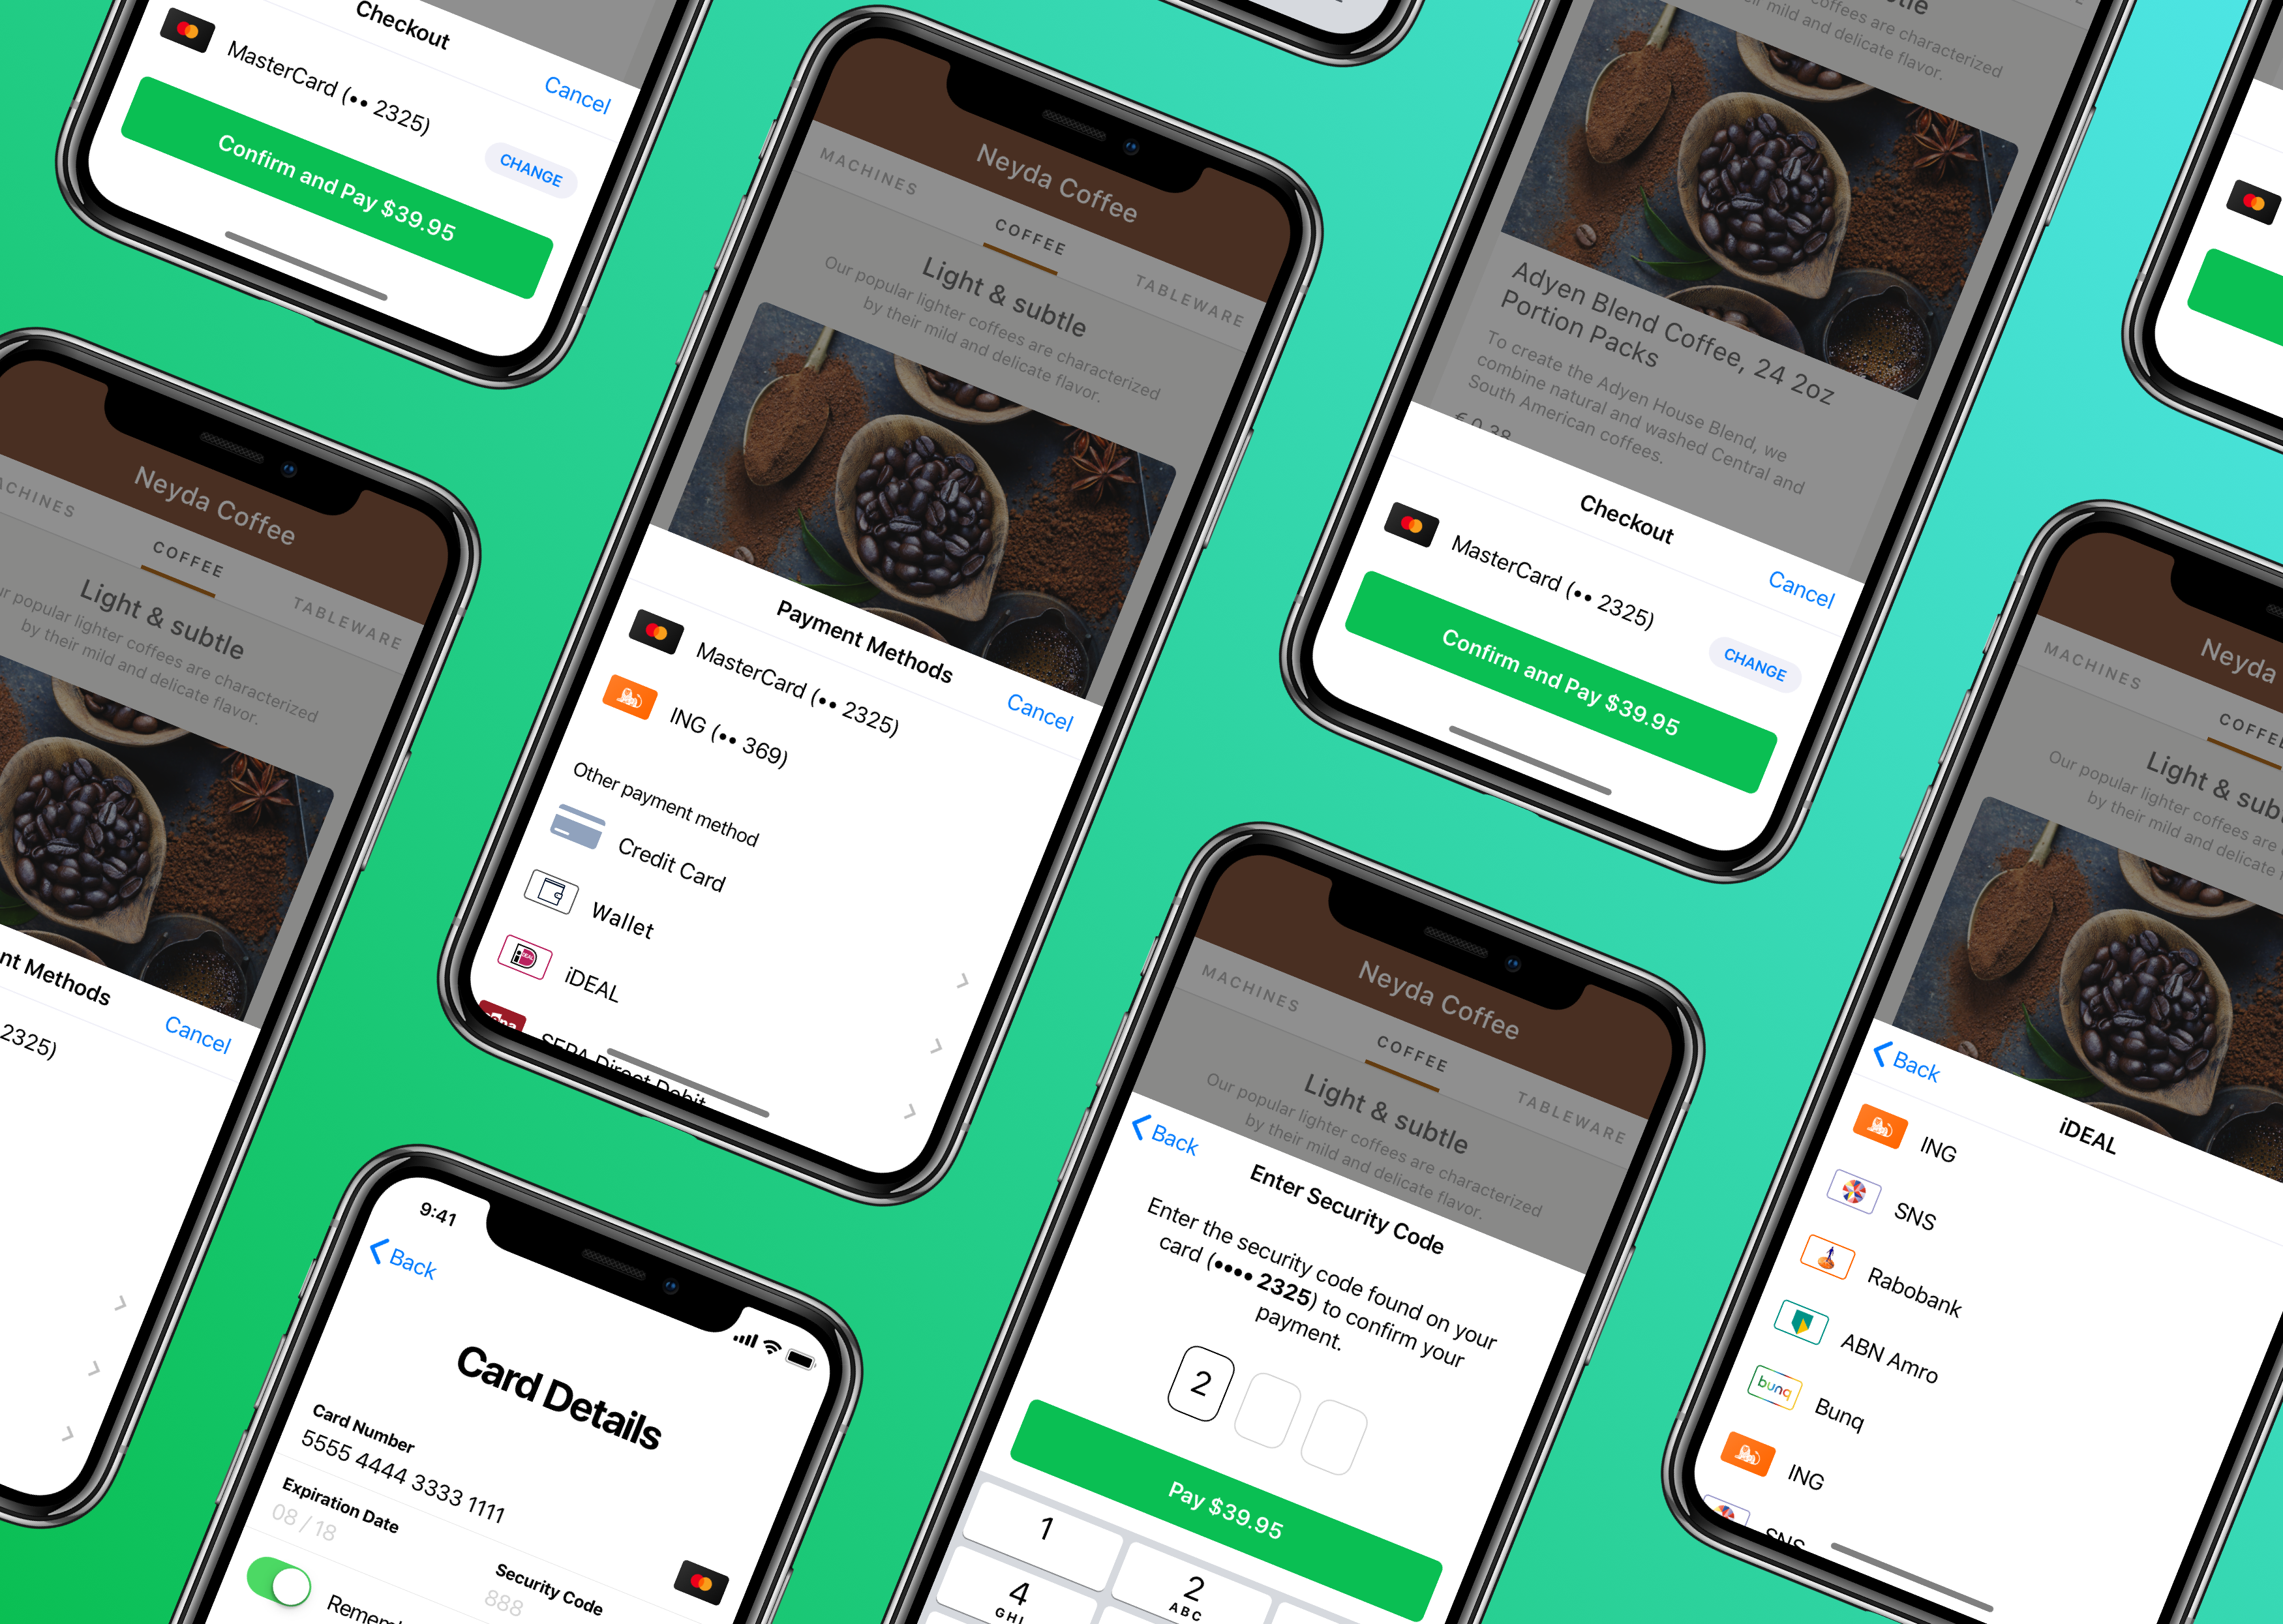 Mobile interface for Adyen, a payments processing company.